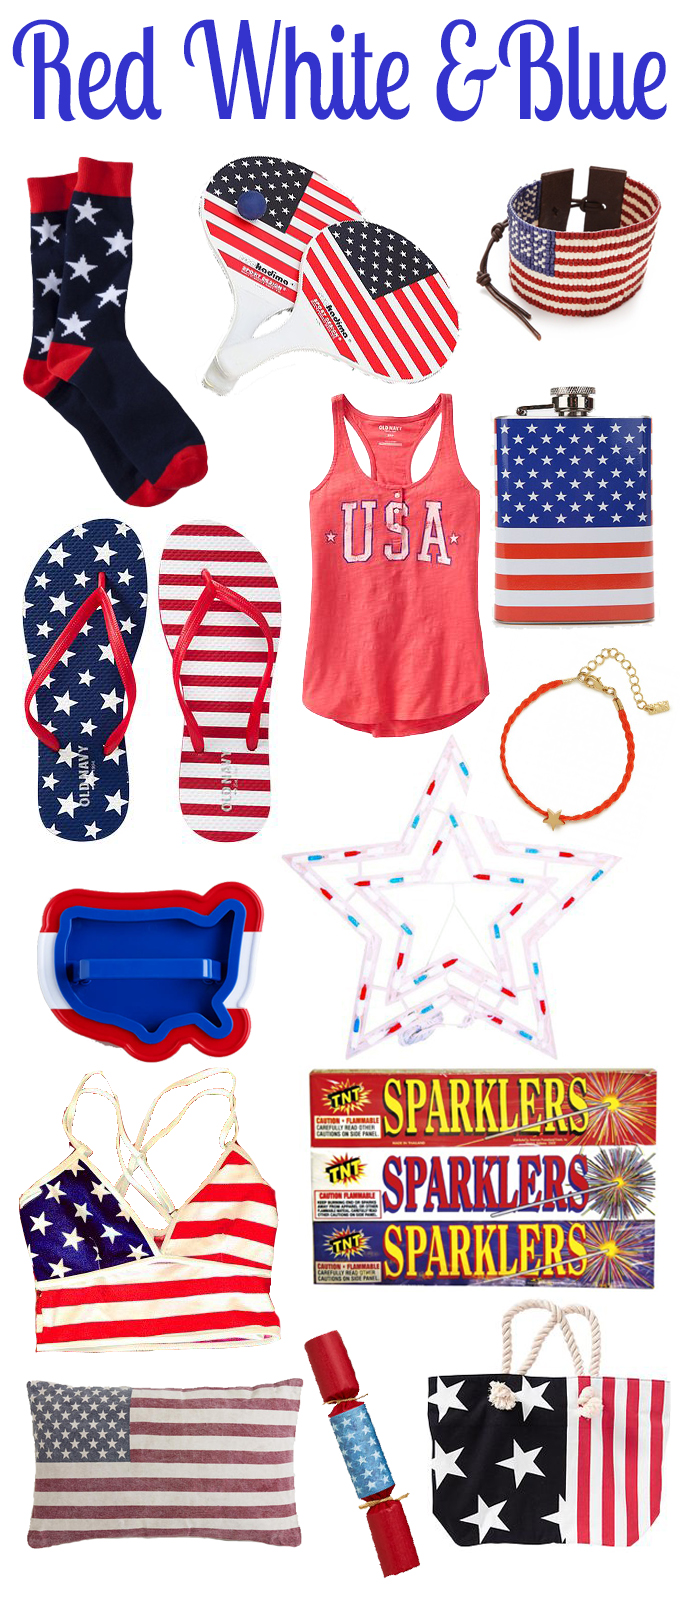 Something Red, White & Blue For The 4th!